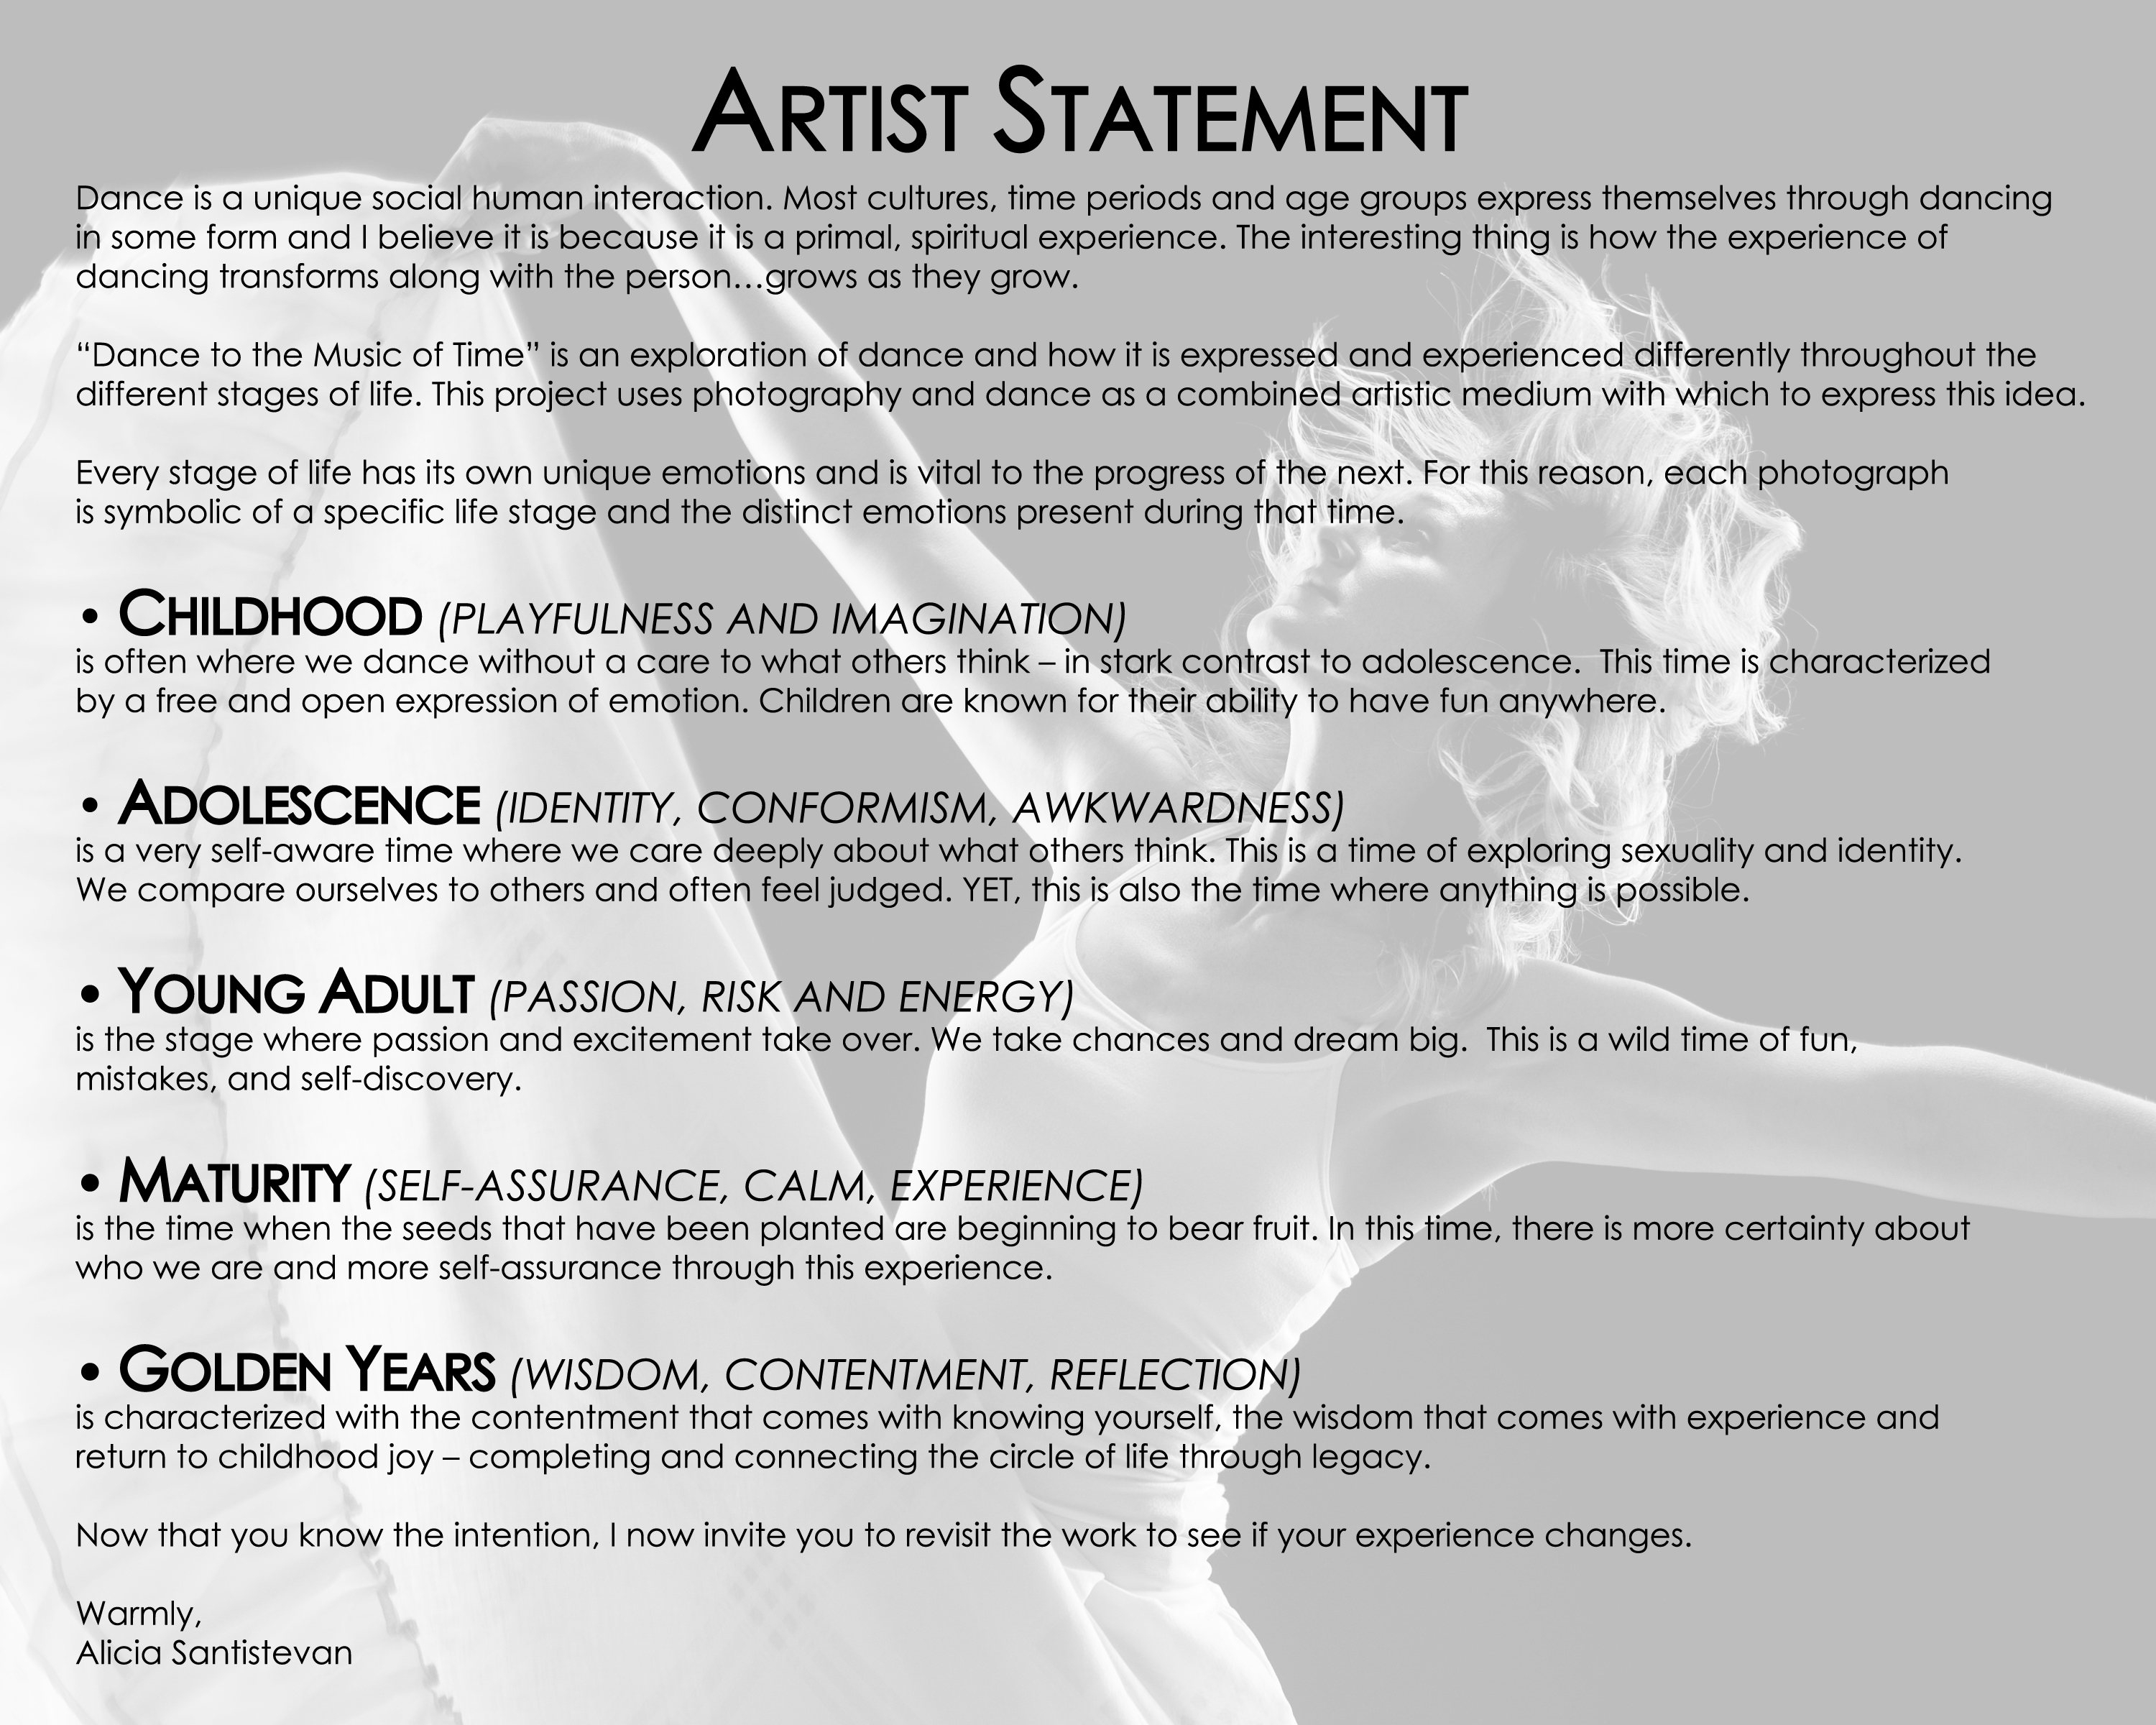 artiststatement